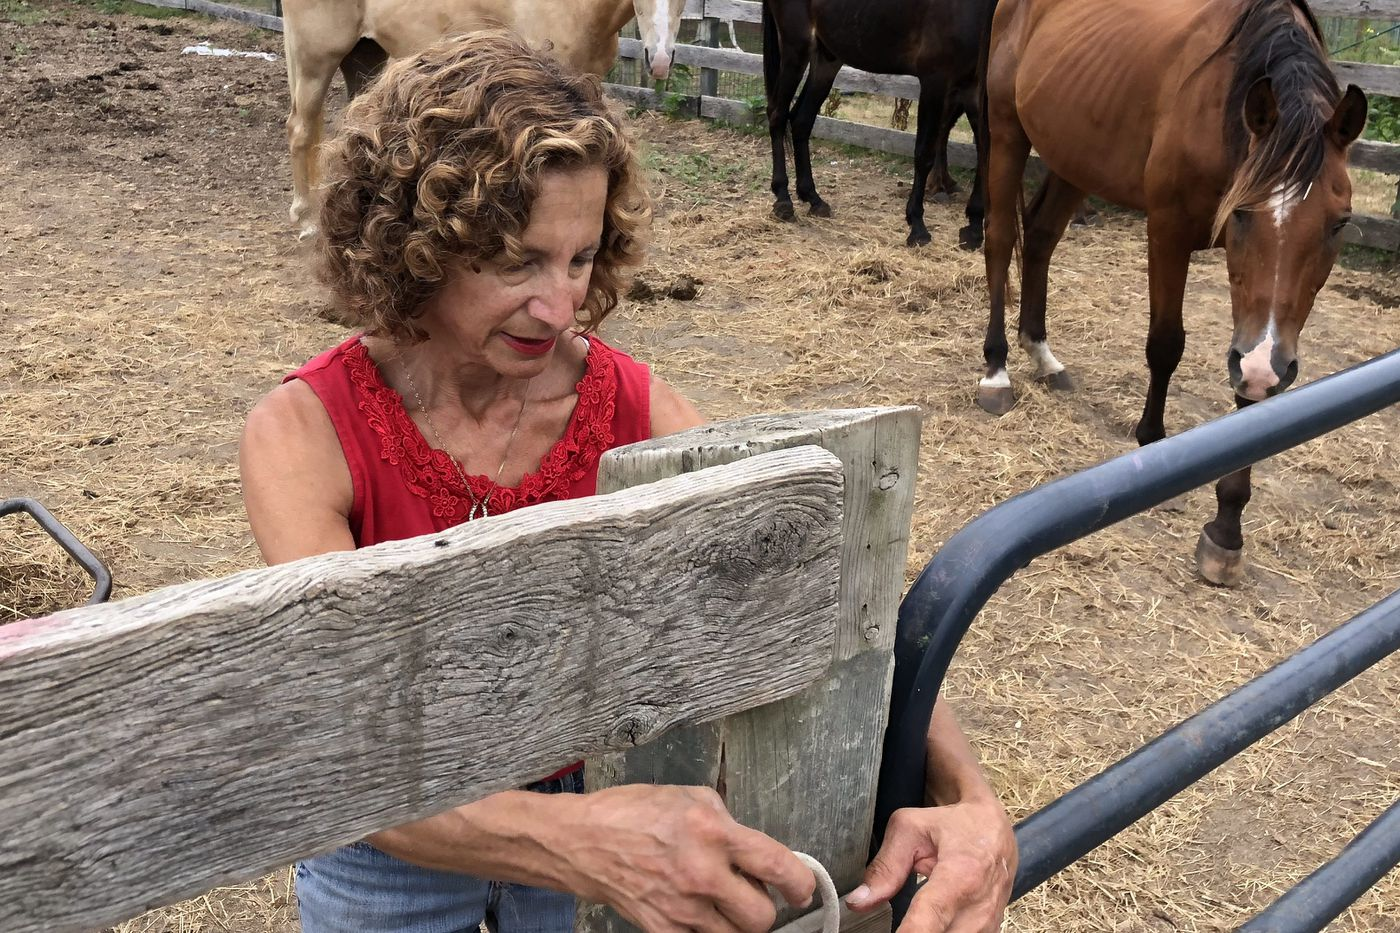 After animal cruelty charges, a call for veterinary help at a South Jersey horse sanctuary